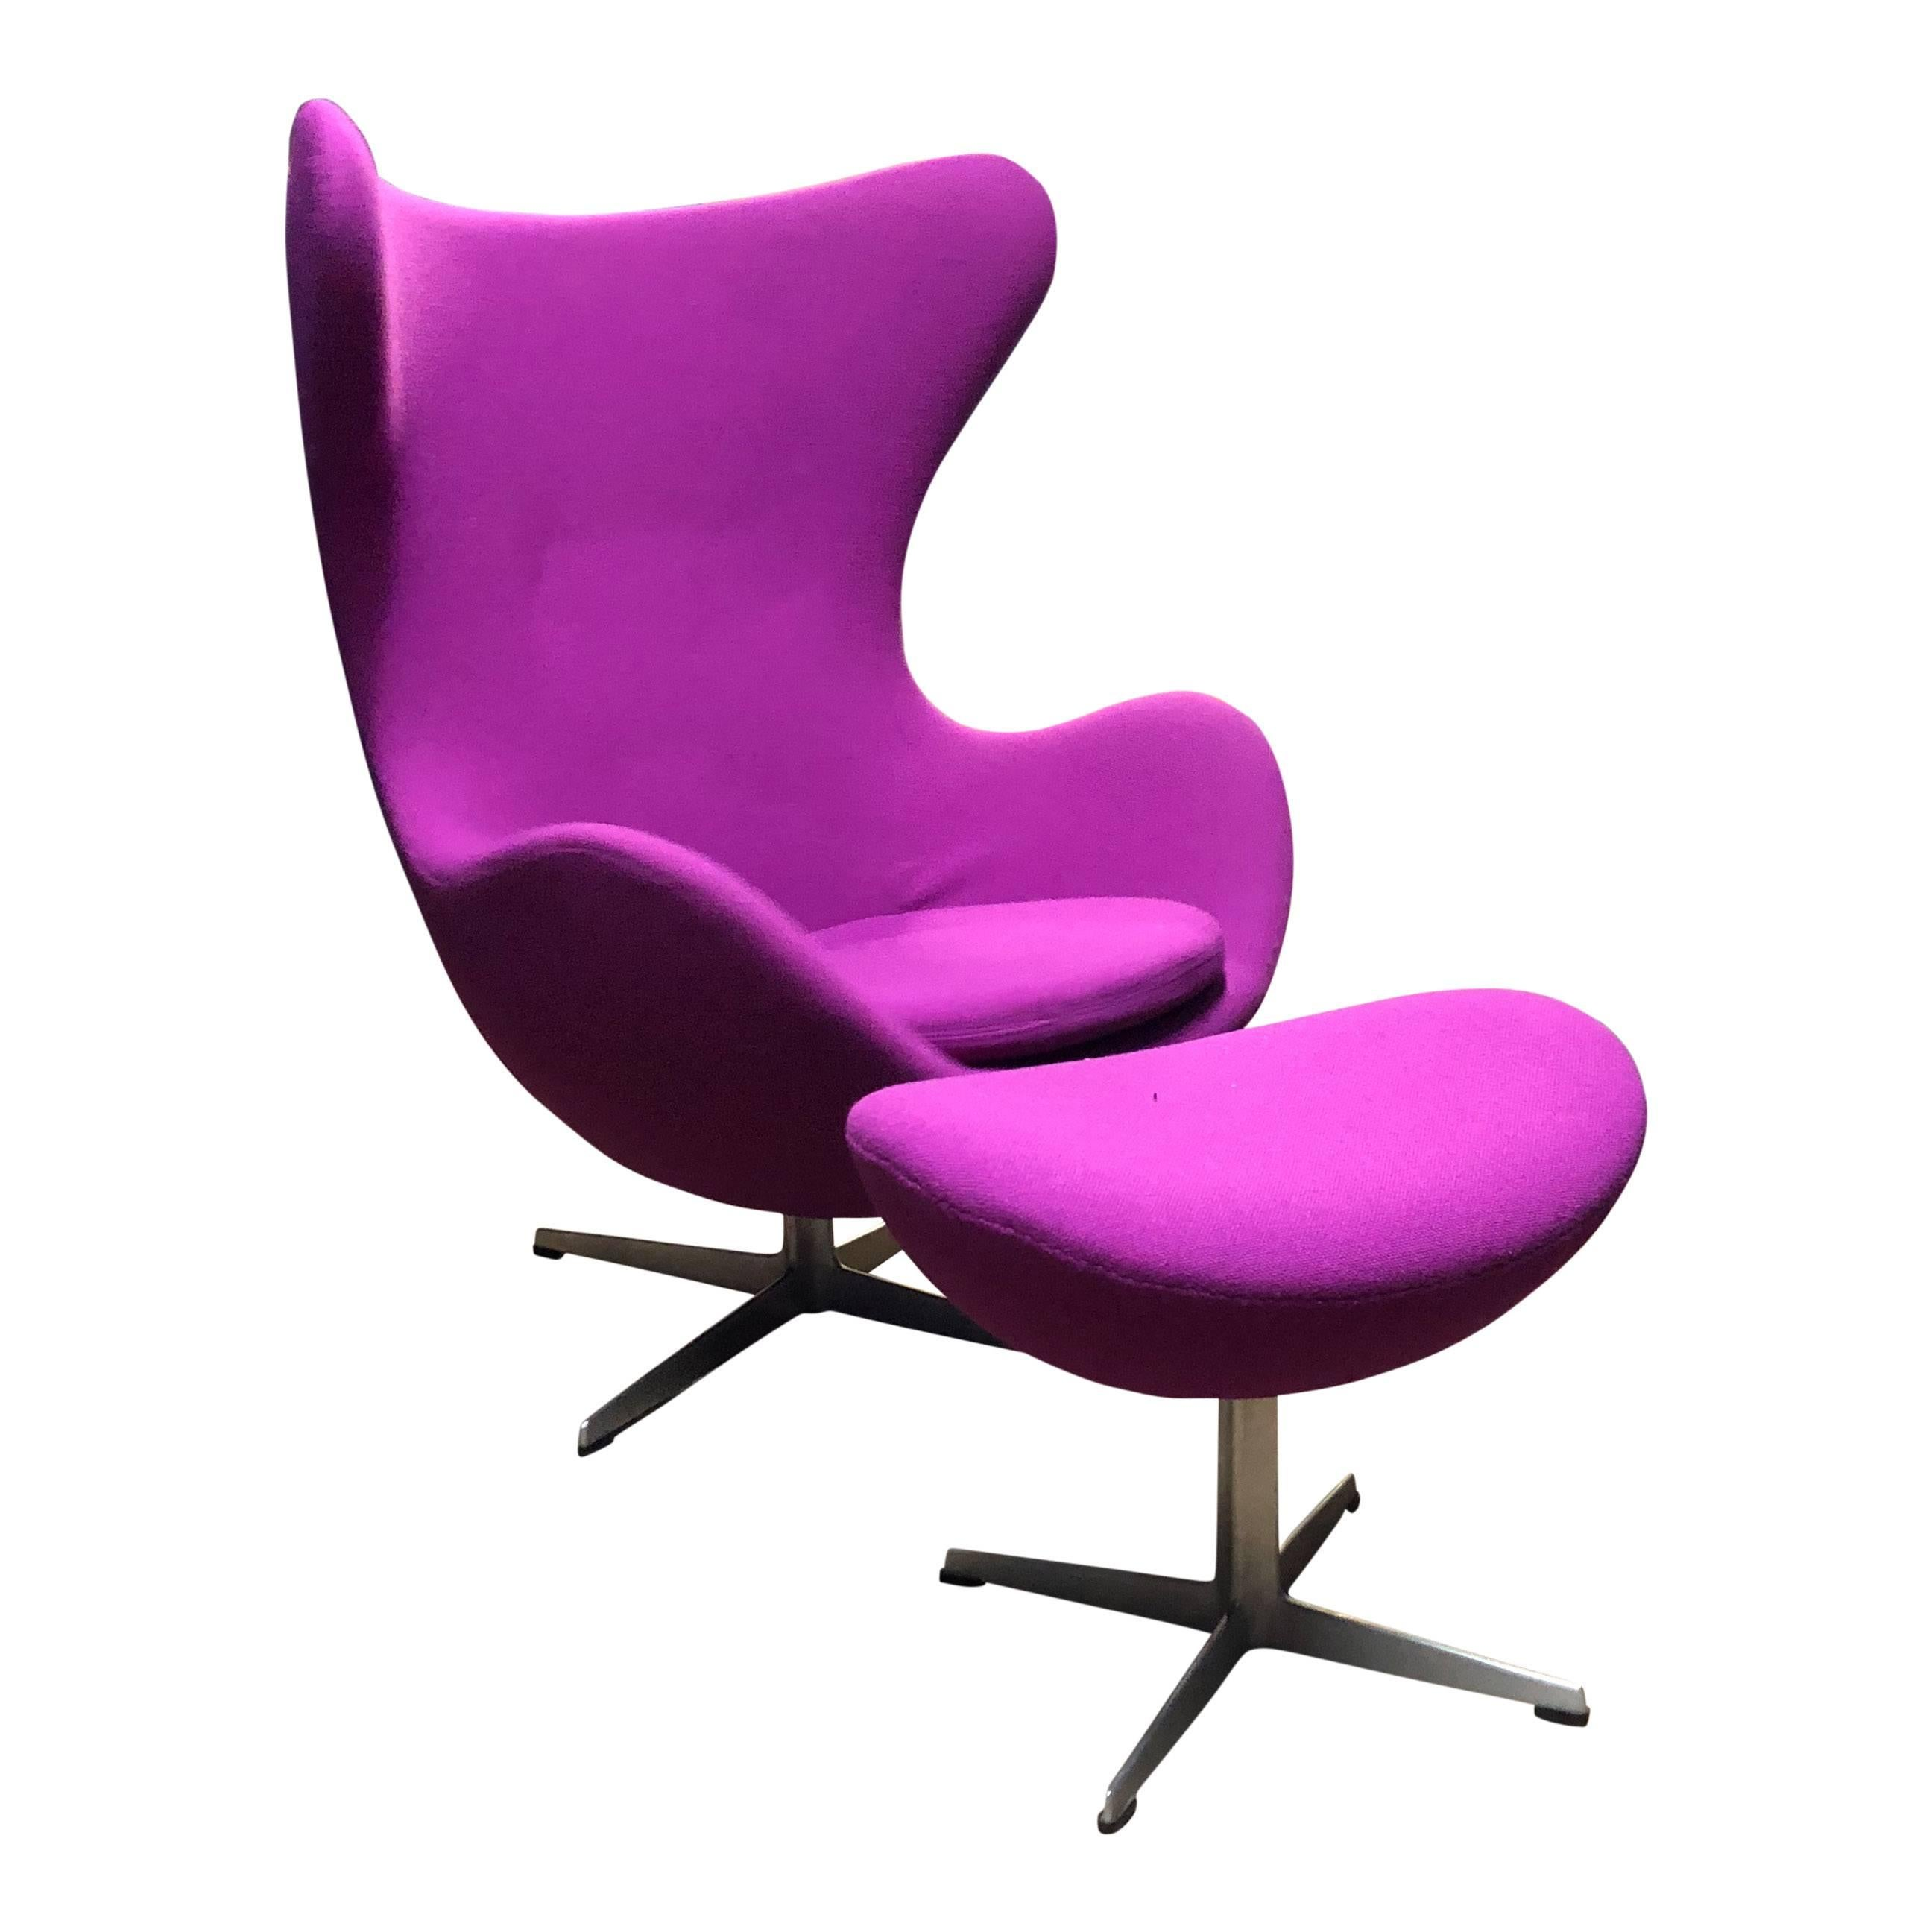 Arne Jacobsen For Fritz Hansen Vintage Egg Chair For Sale